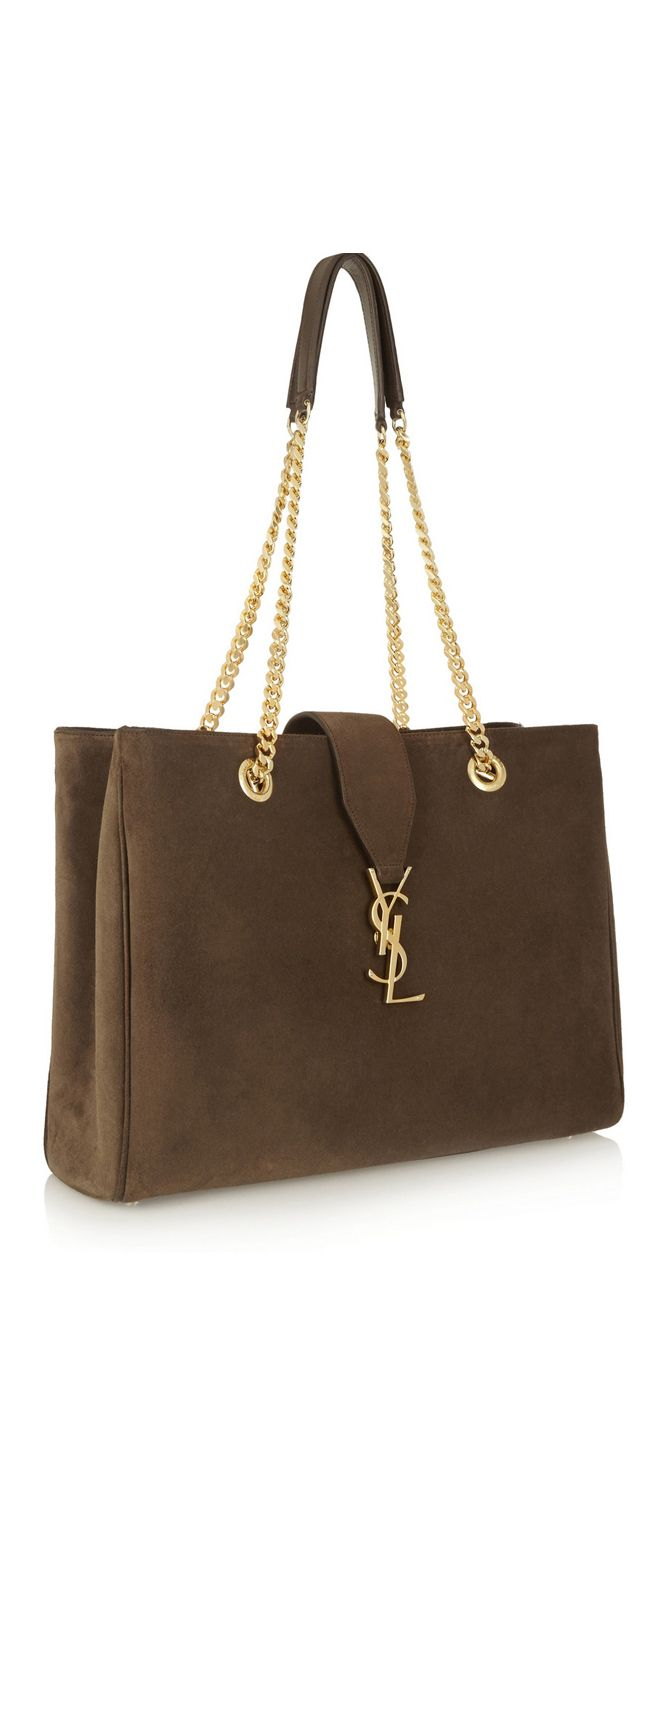 Borsa Yves Saint Laurent